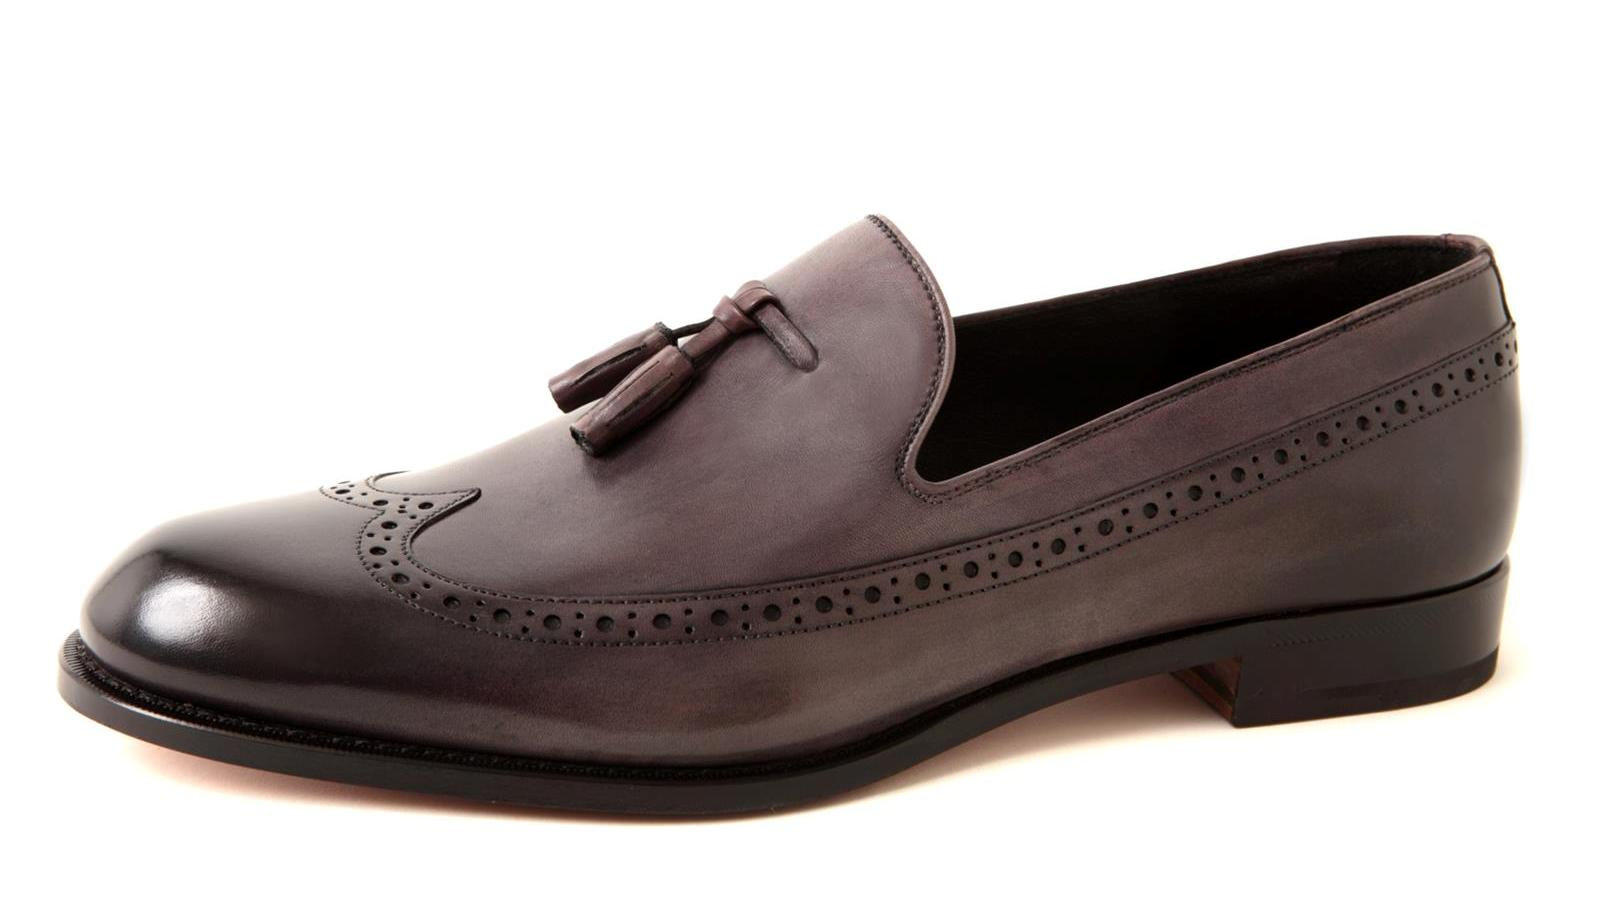 Top 10 Best Leather Shoes Brands in